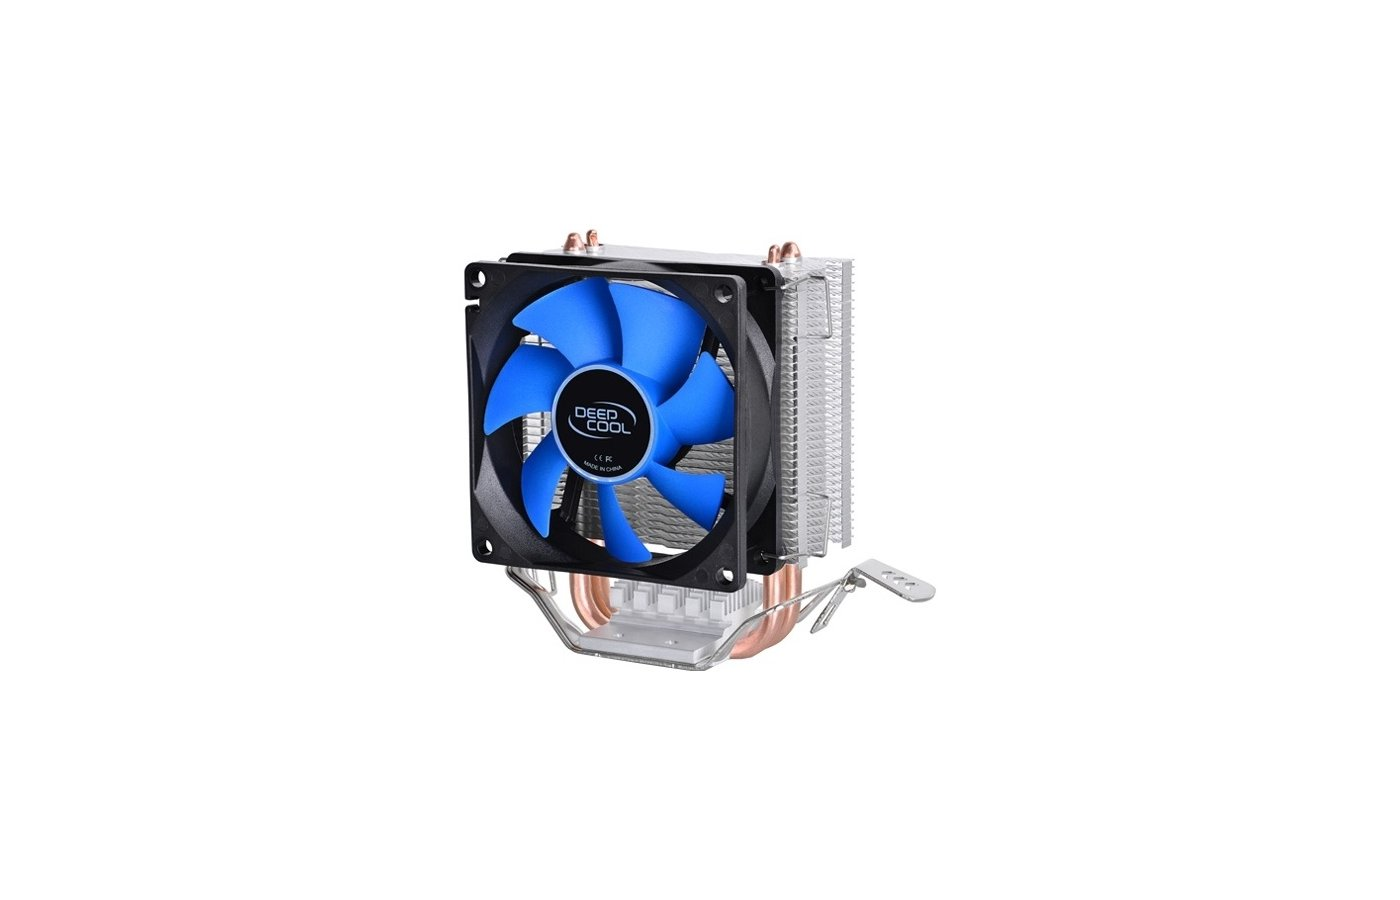 Охлаждение Deepcool ICEEDGE MINI FS V2.0 Soc-AMD/775/1150/1155/1156/ 3pin 25dB Al+Cu 95W 248g клипсы RTL